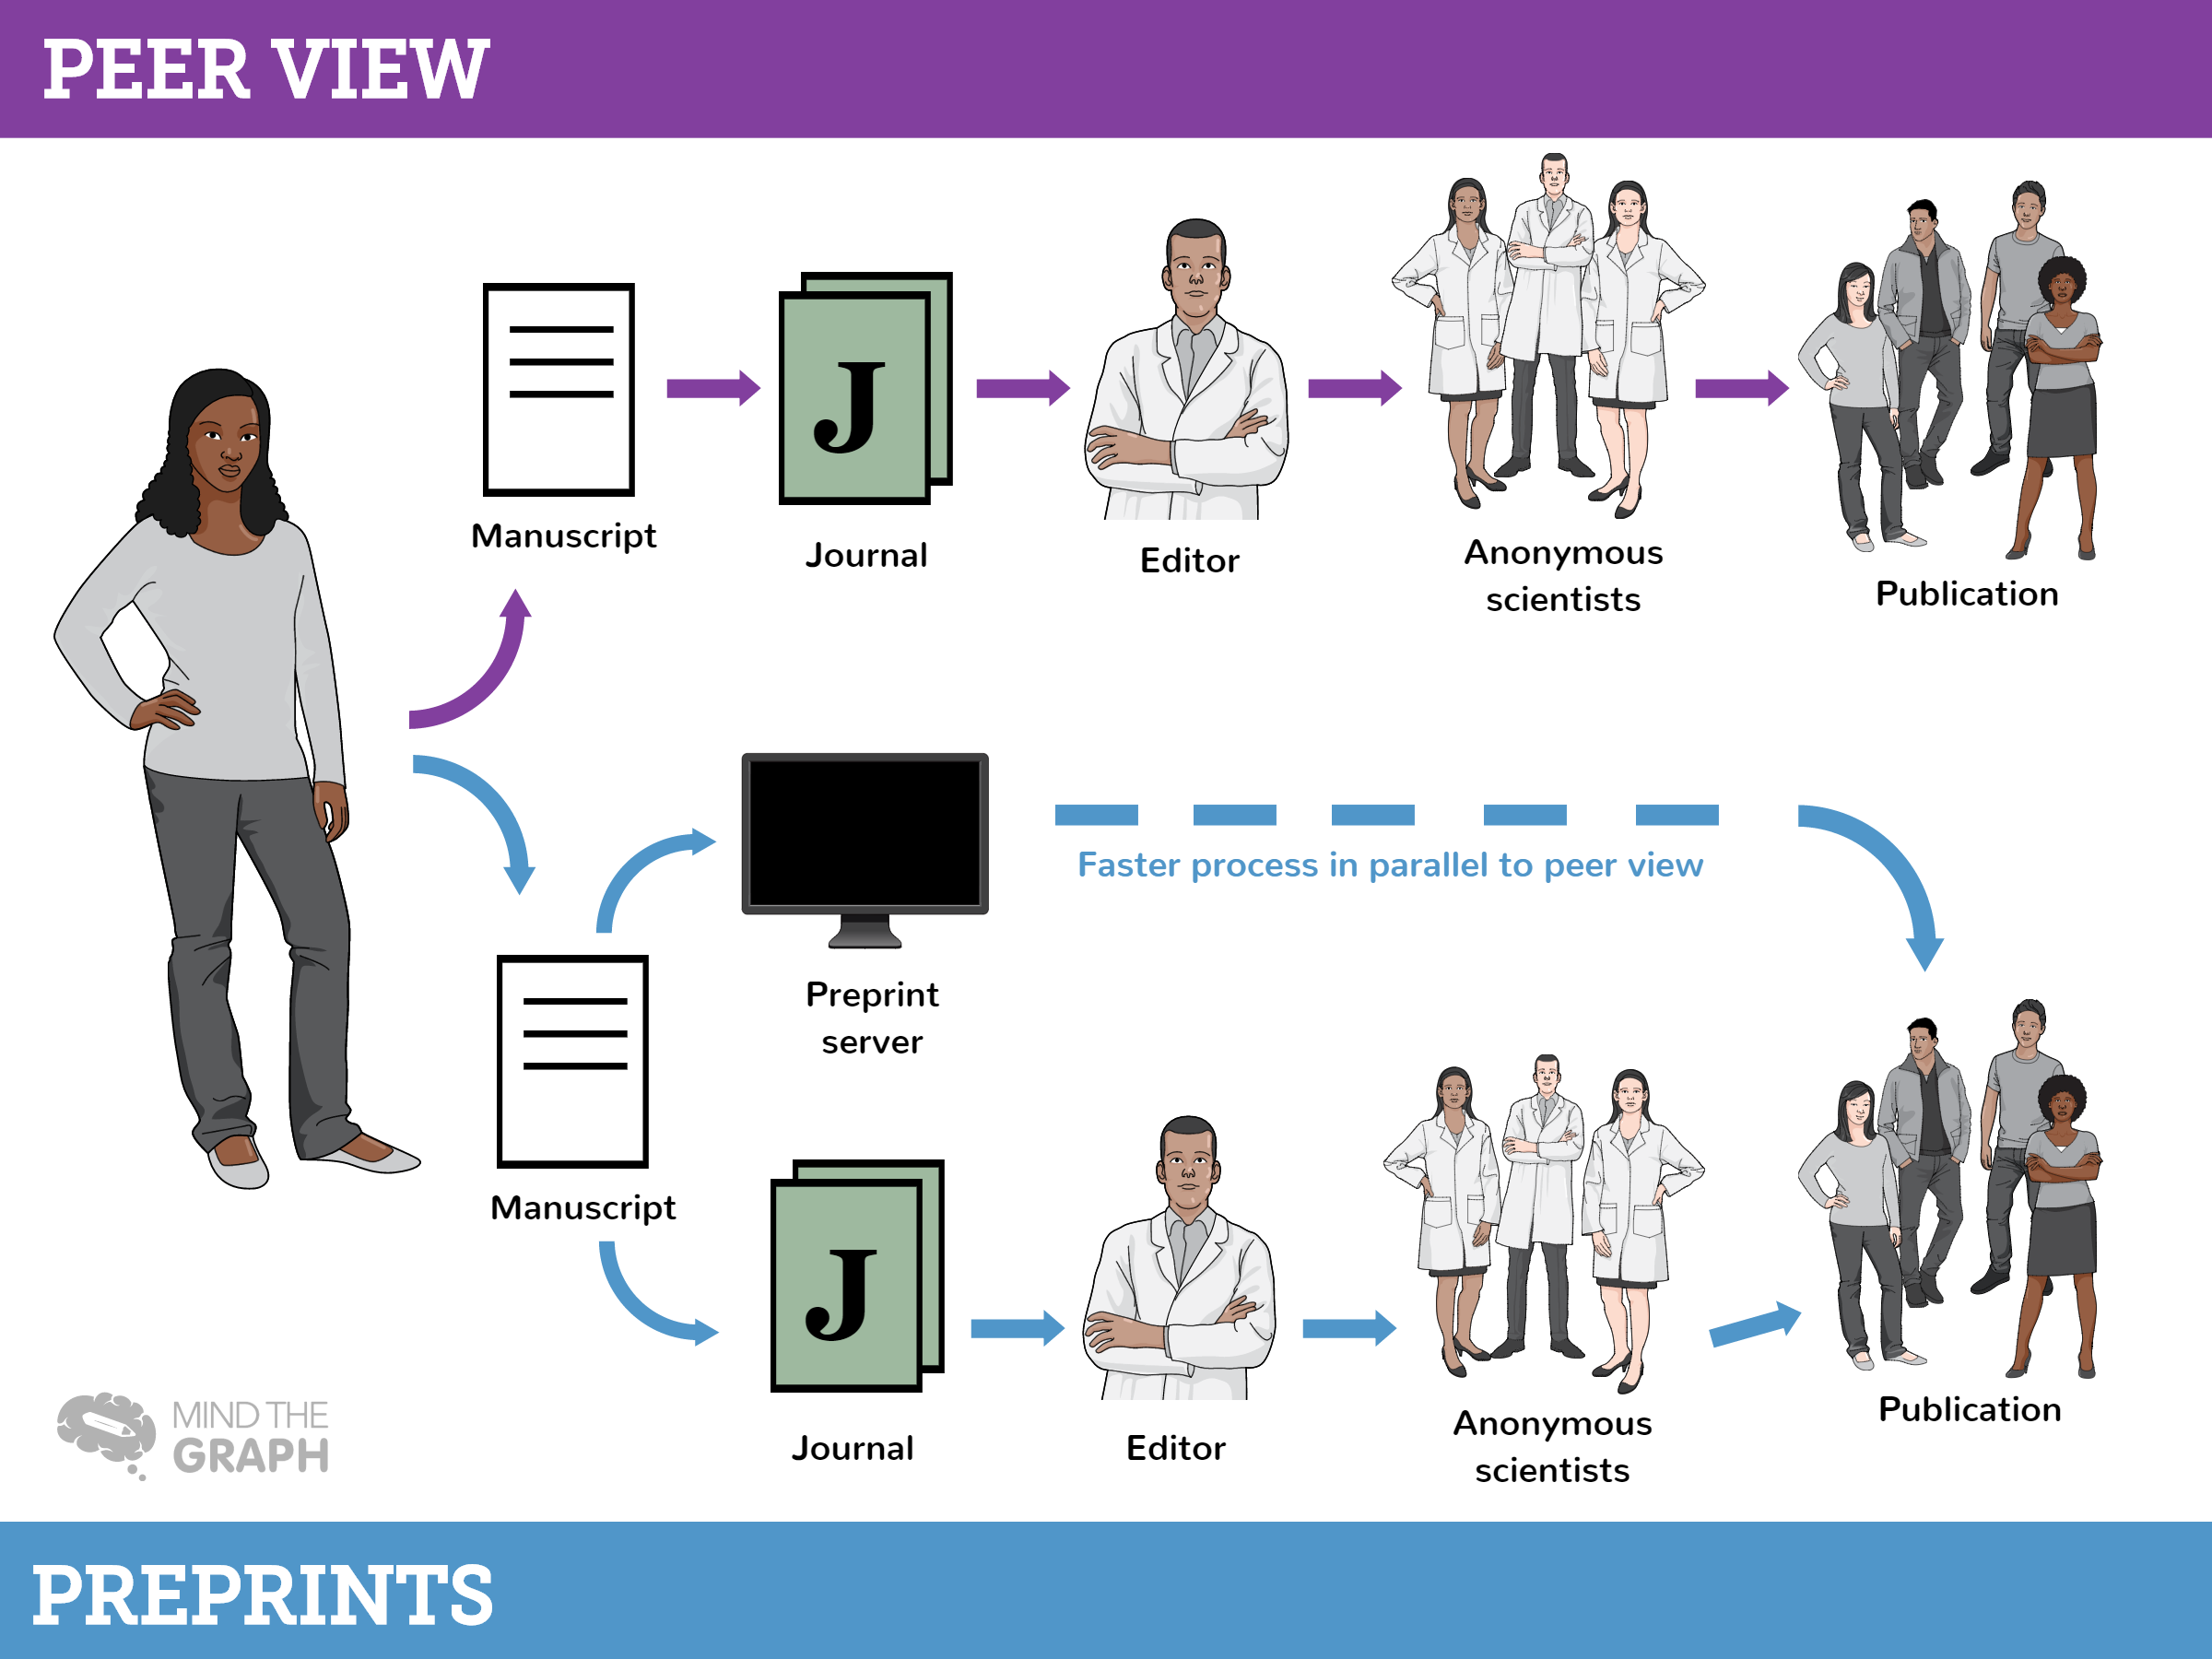 Preprints: Are they the new peer view?